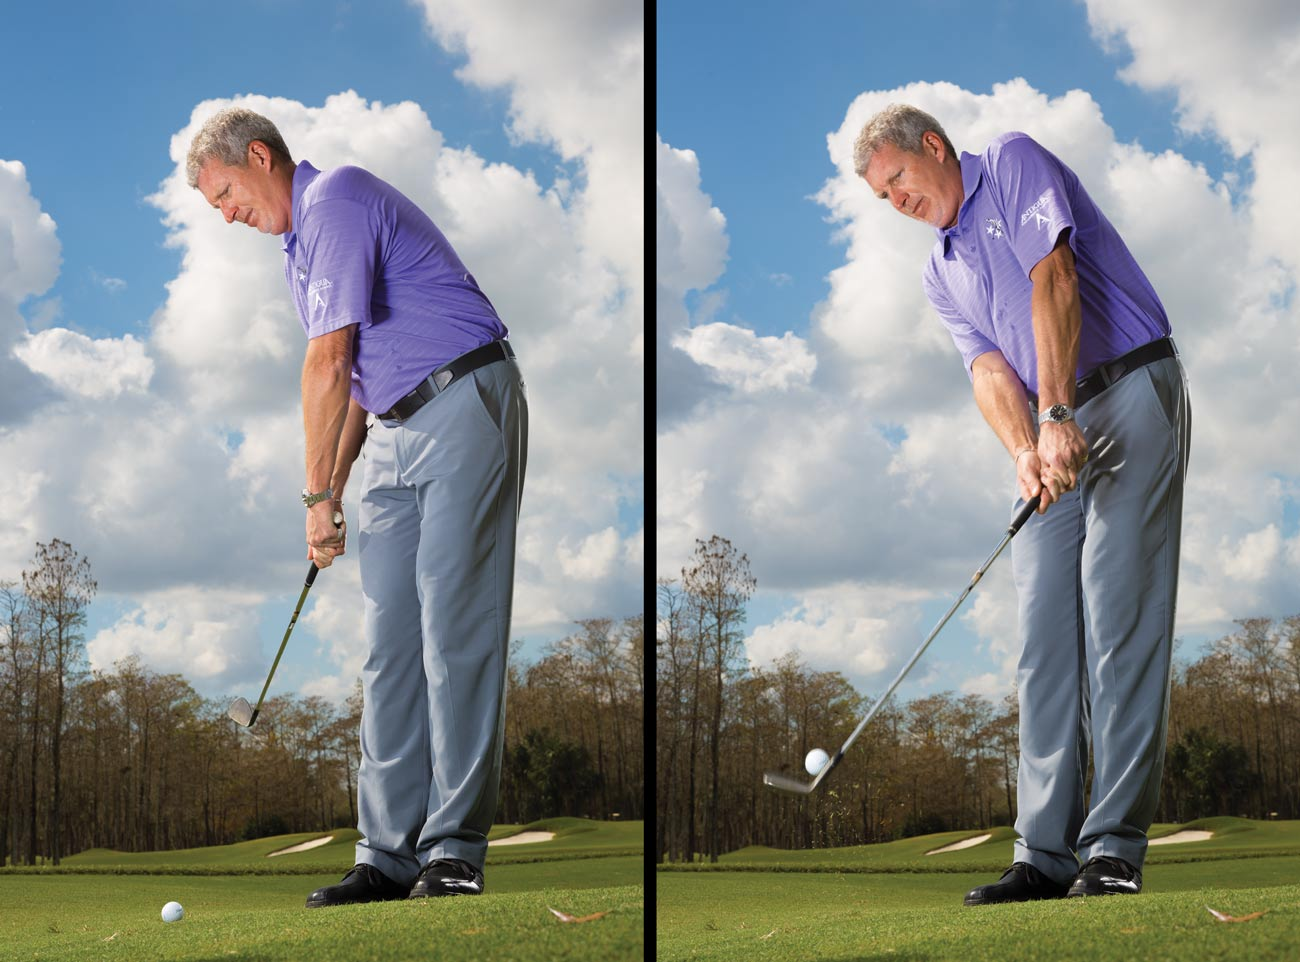 With this setup, you're free to make a slightly bigger backswing but not so free to yank the club off-plane. As before, hinge your wrists and fold your right elbow. Make the same downswing—push the club to the ball with your right arm while softly turning toward the target. Through impact, extend your arms and keep the clubhead low to the ground.